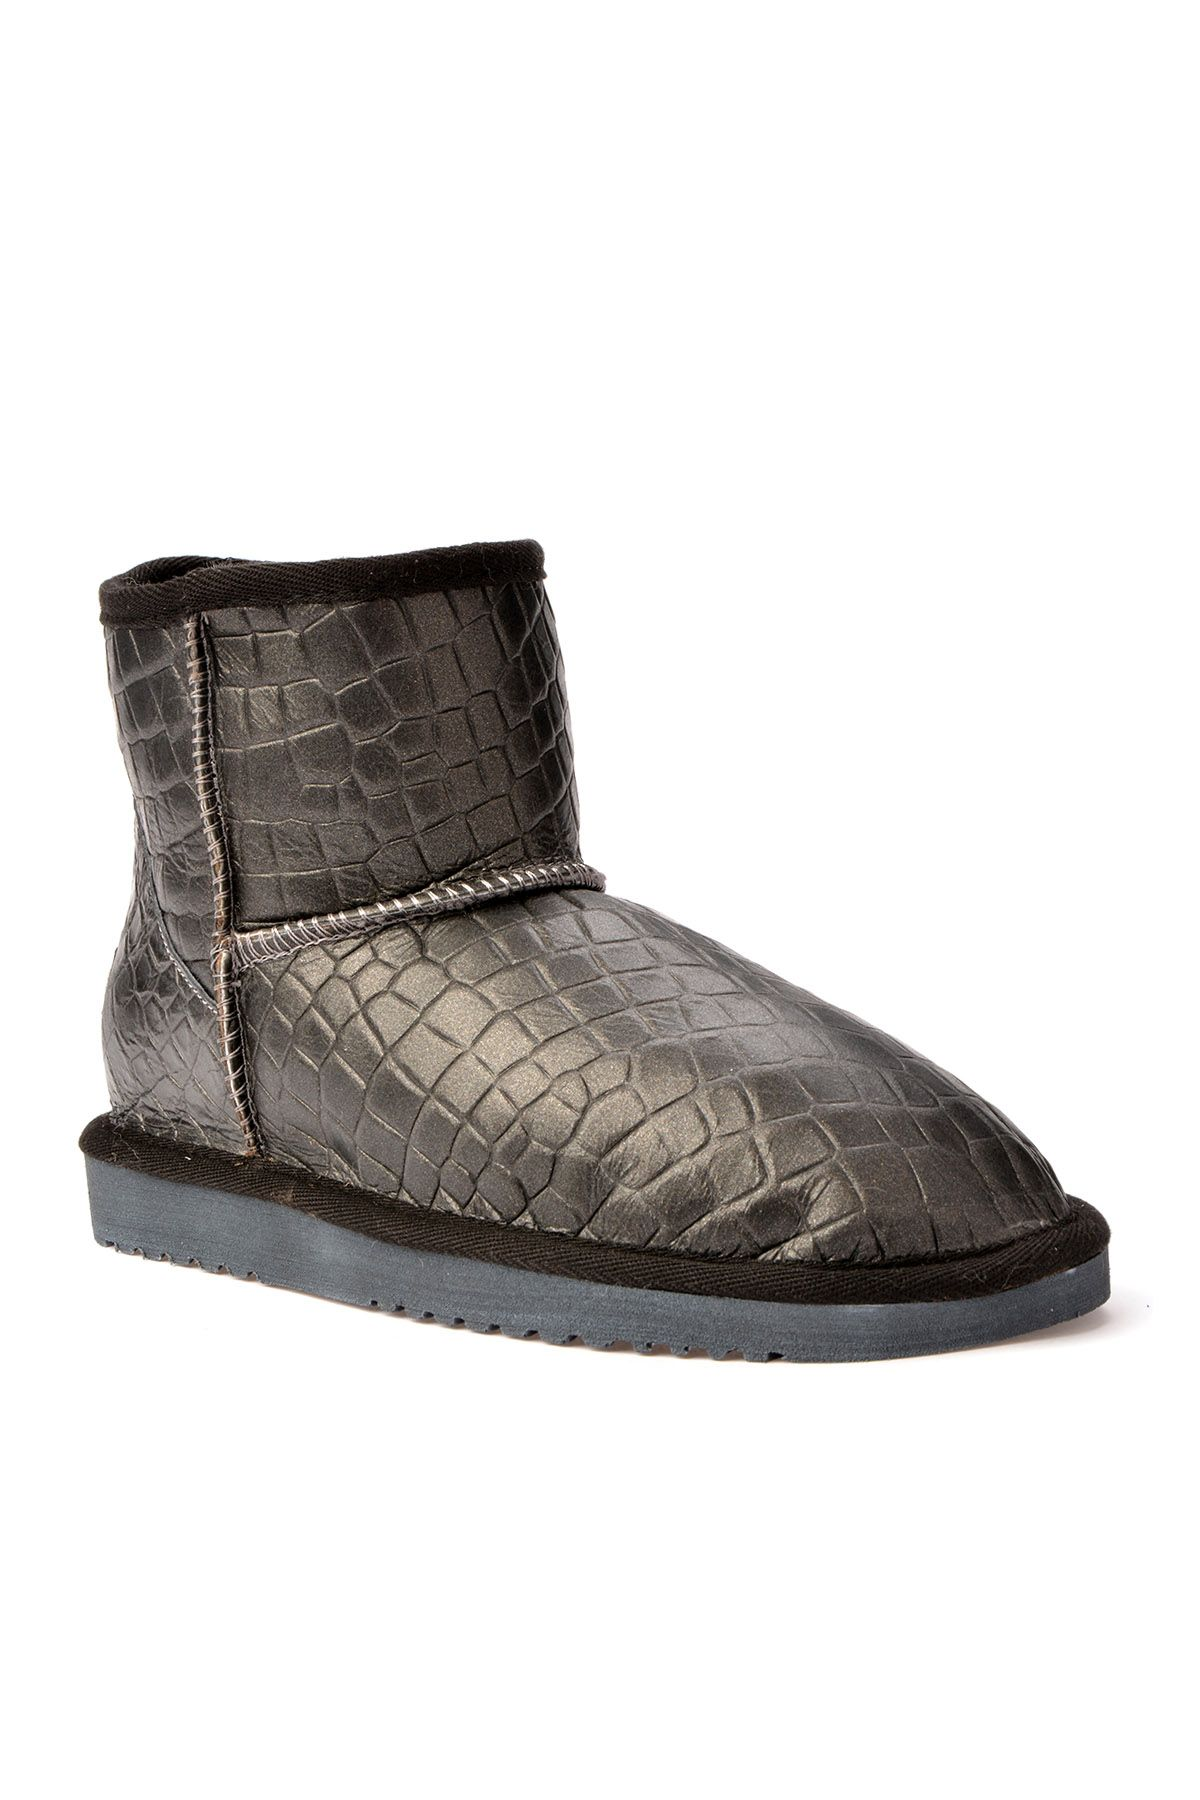 Cool Moon Women Boots From Genuine Fur With Crocodile Pattern 990176 Anthracite-colored